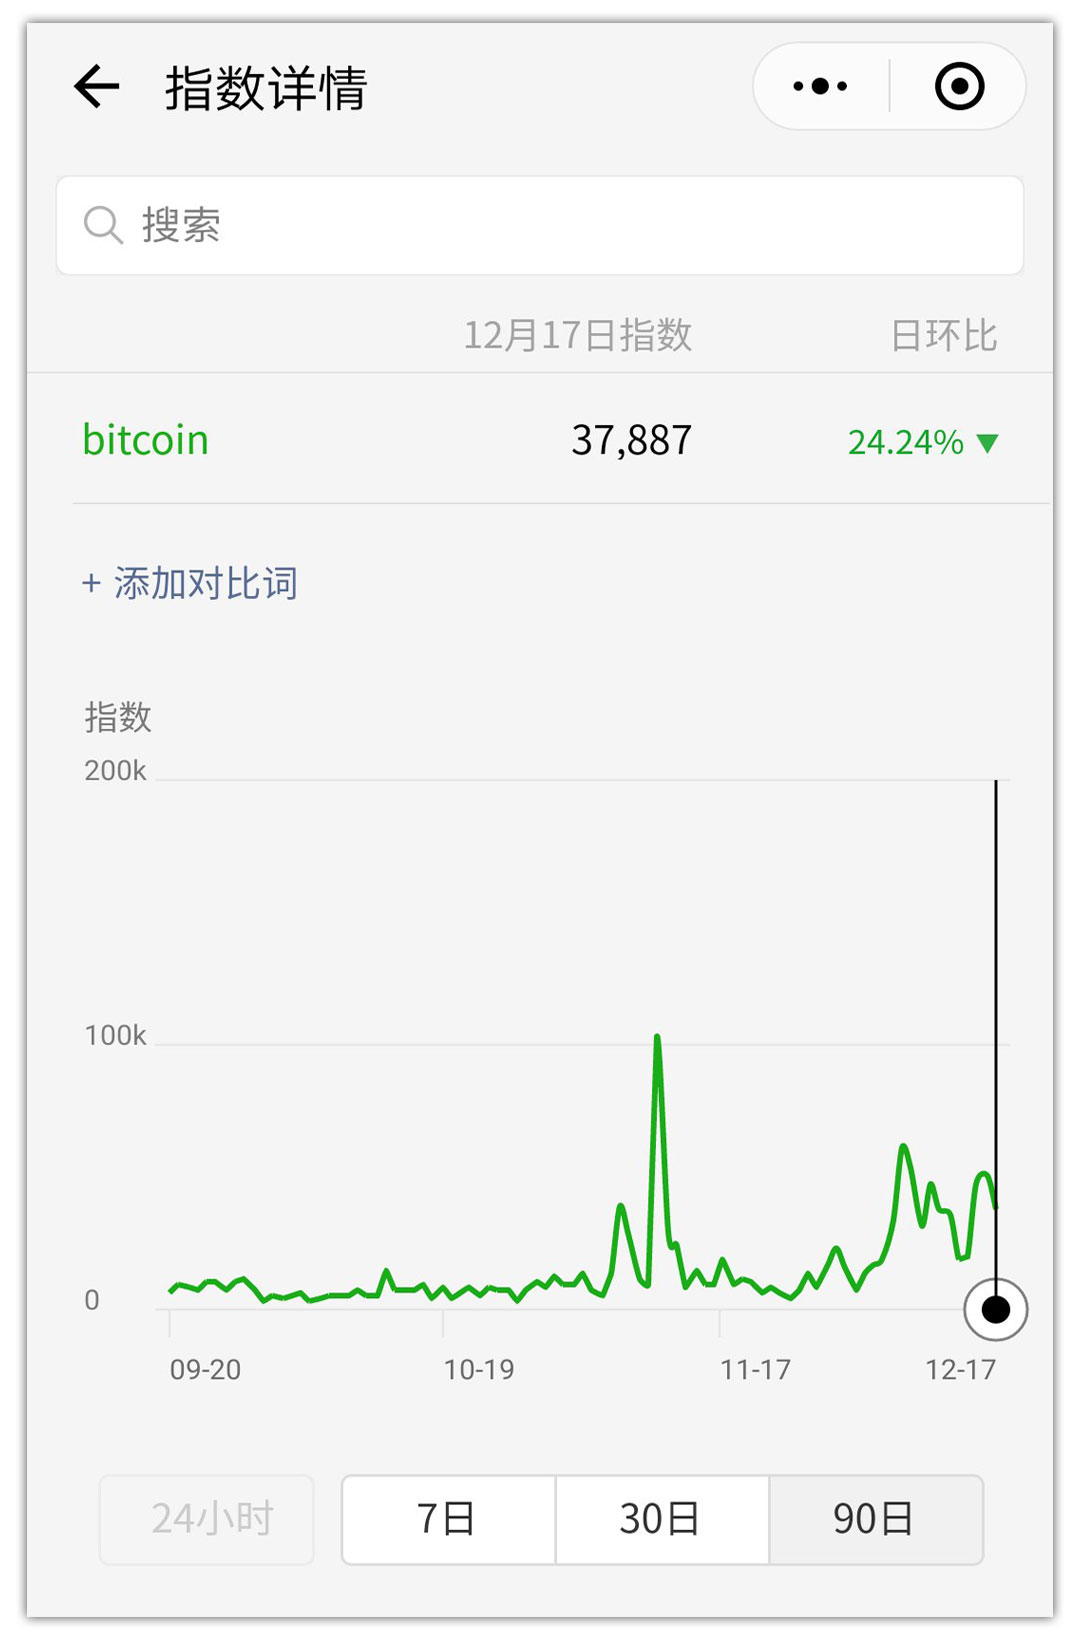 WeChat Index Mini Program Bitcoin